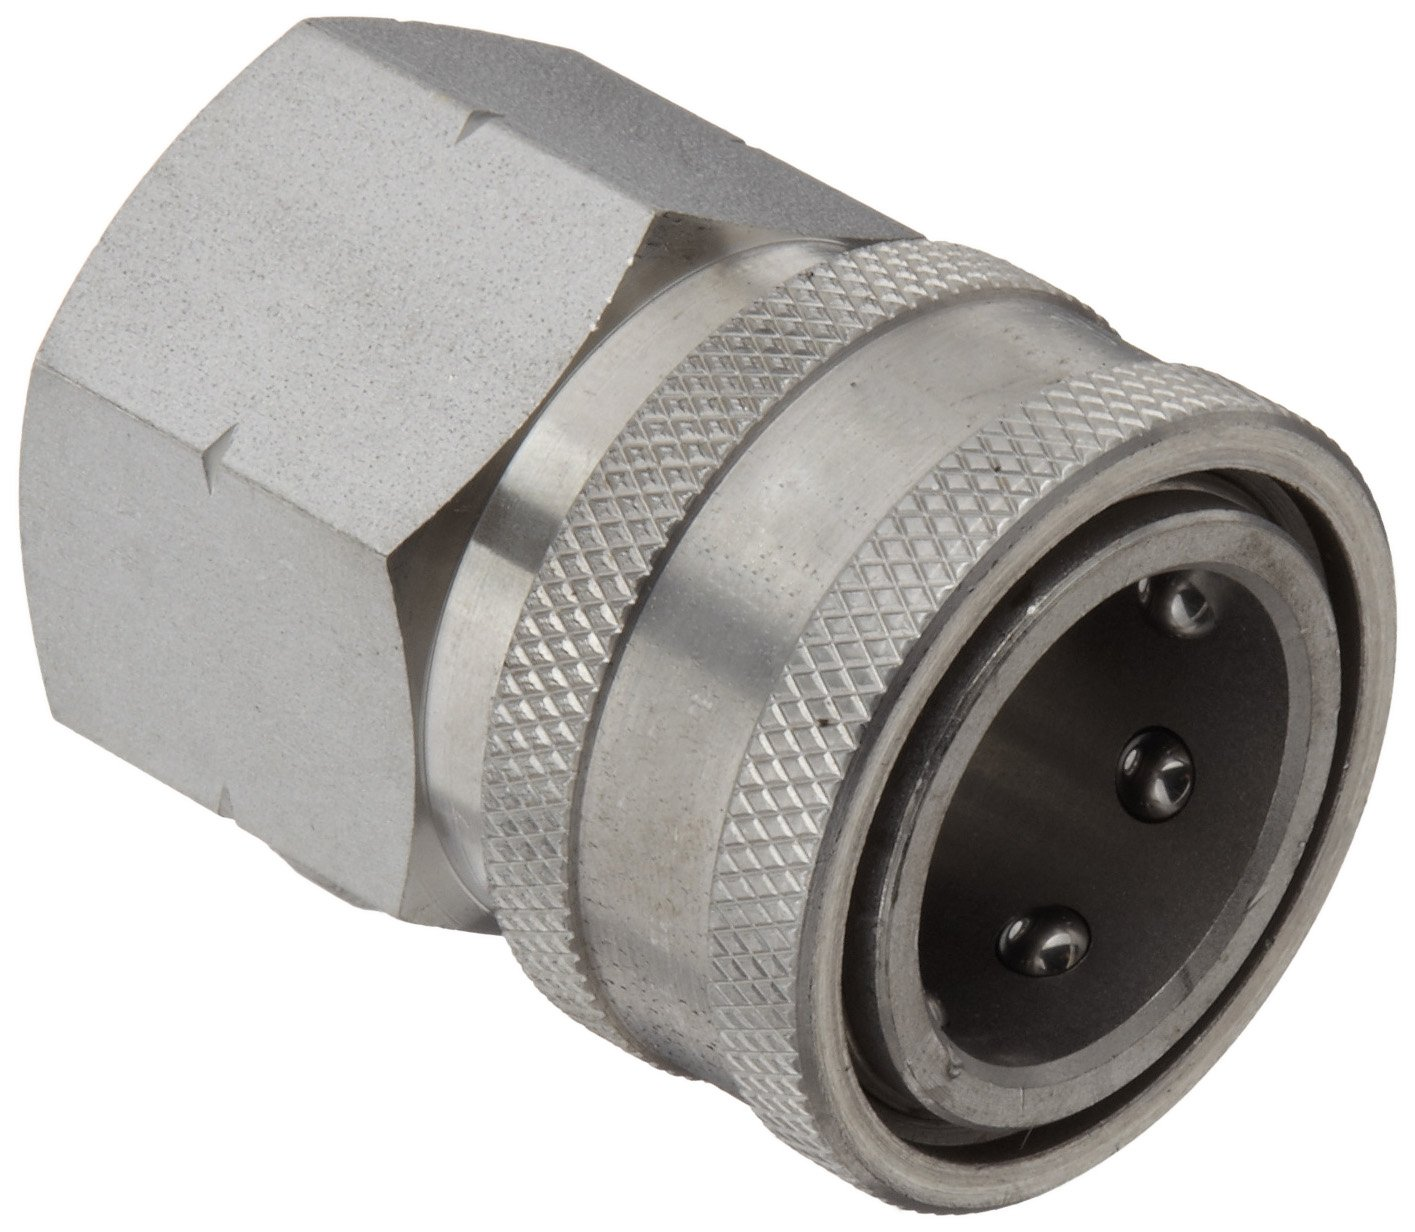 Dixon STFC6SS Stainless Steel 303 Hydraulic Quick-Connect Fitting, Coupler, 3/4'' Female Coupling, 3/4''-14 Straight Thread